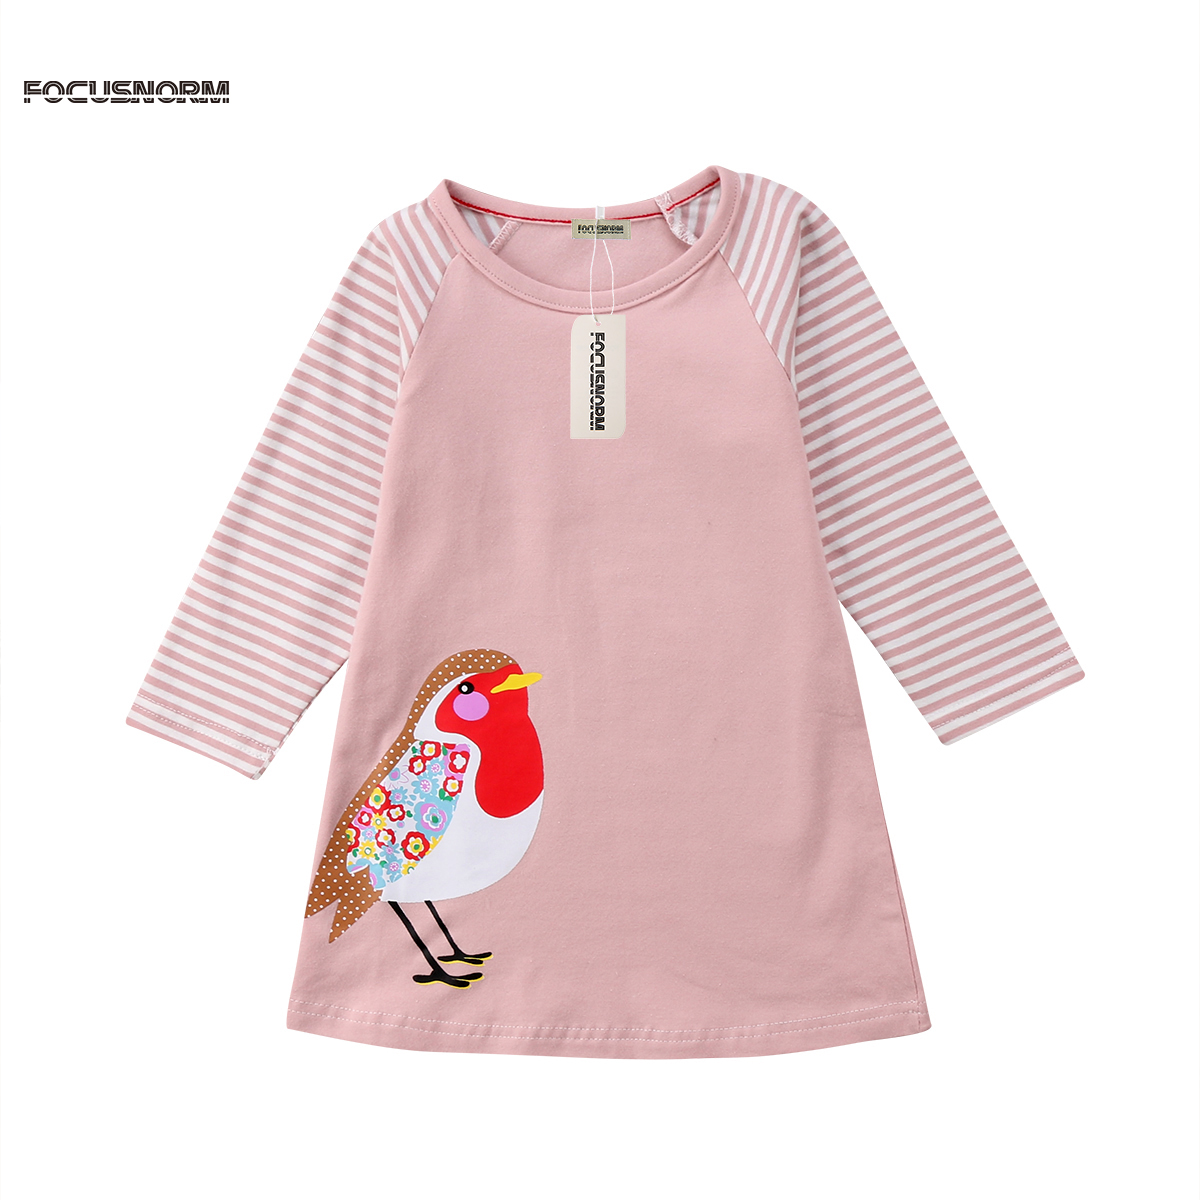 Long Sleeve Girl Dress striped Casual Cotton Spring Autumn Animal Applique Toddler Baby Girls Princess Dresses Baby Girl Clothe spring autumn candy color cotton baby girl dresses long sleeve solid princess dress bow knot o neck casual kids pleated dresses